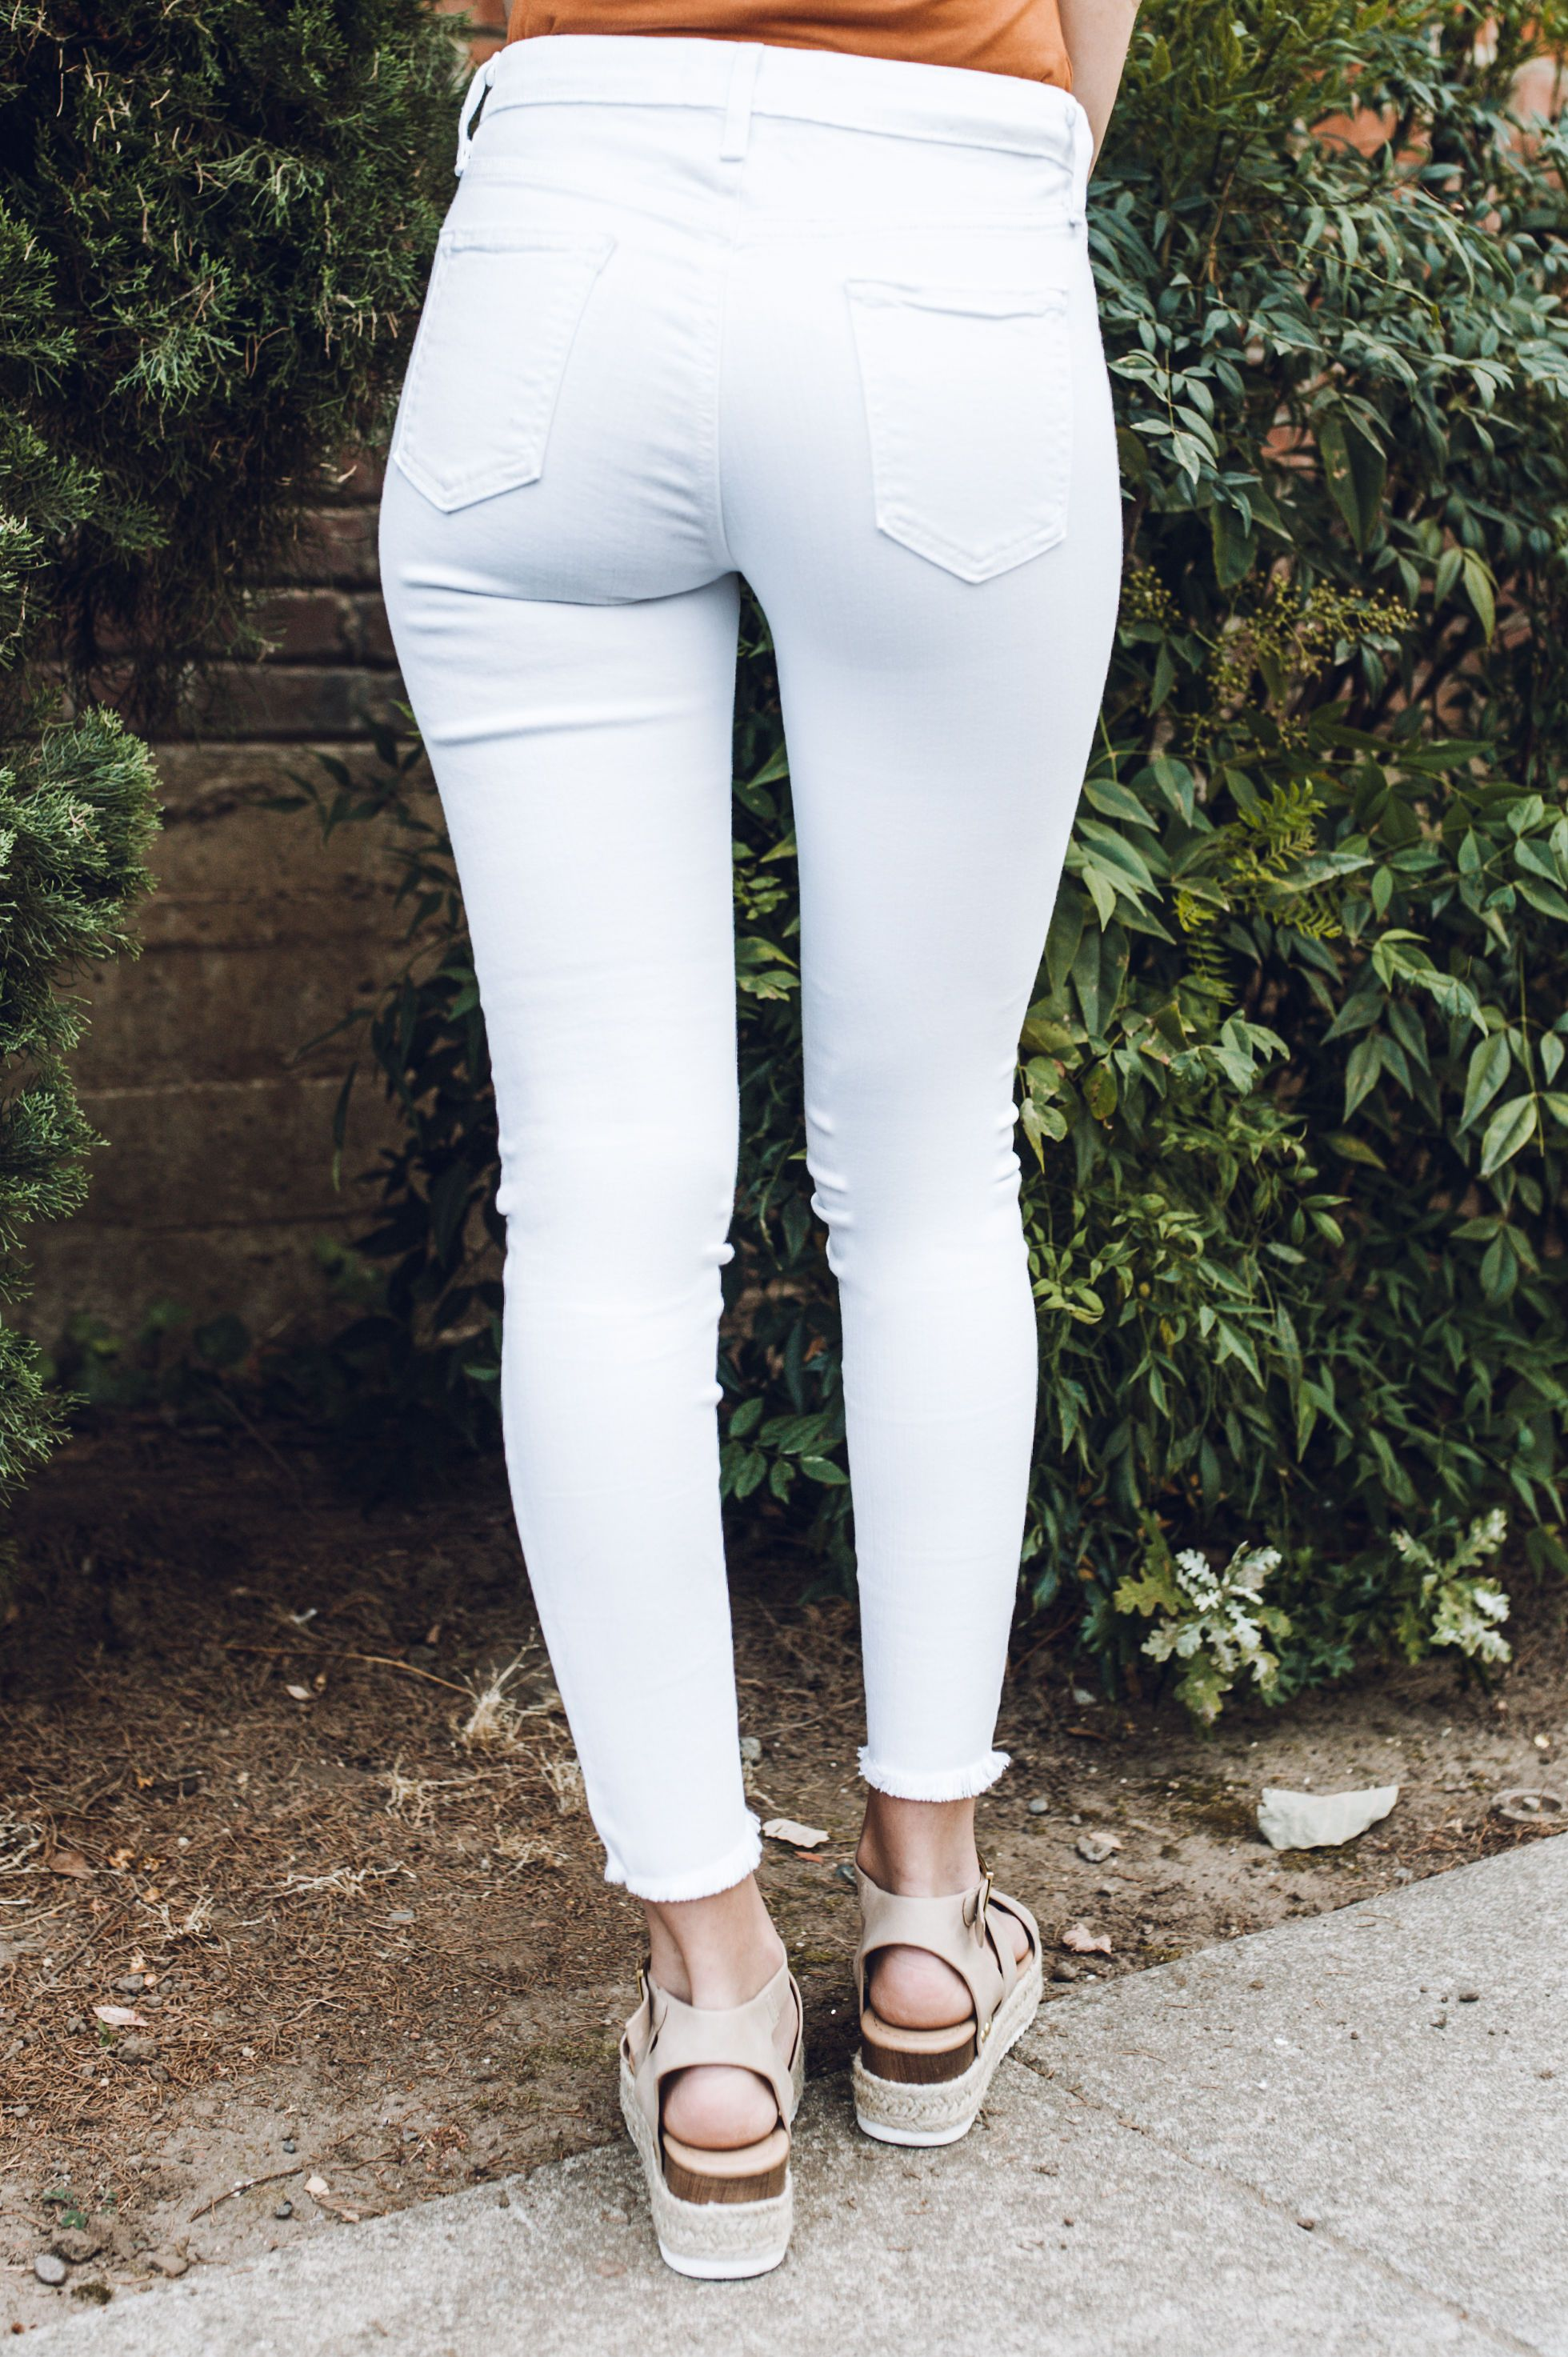 Jessica's High Rise Jeans